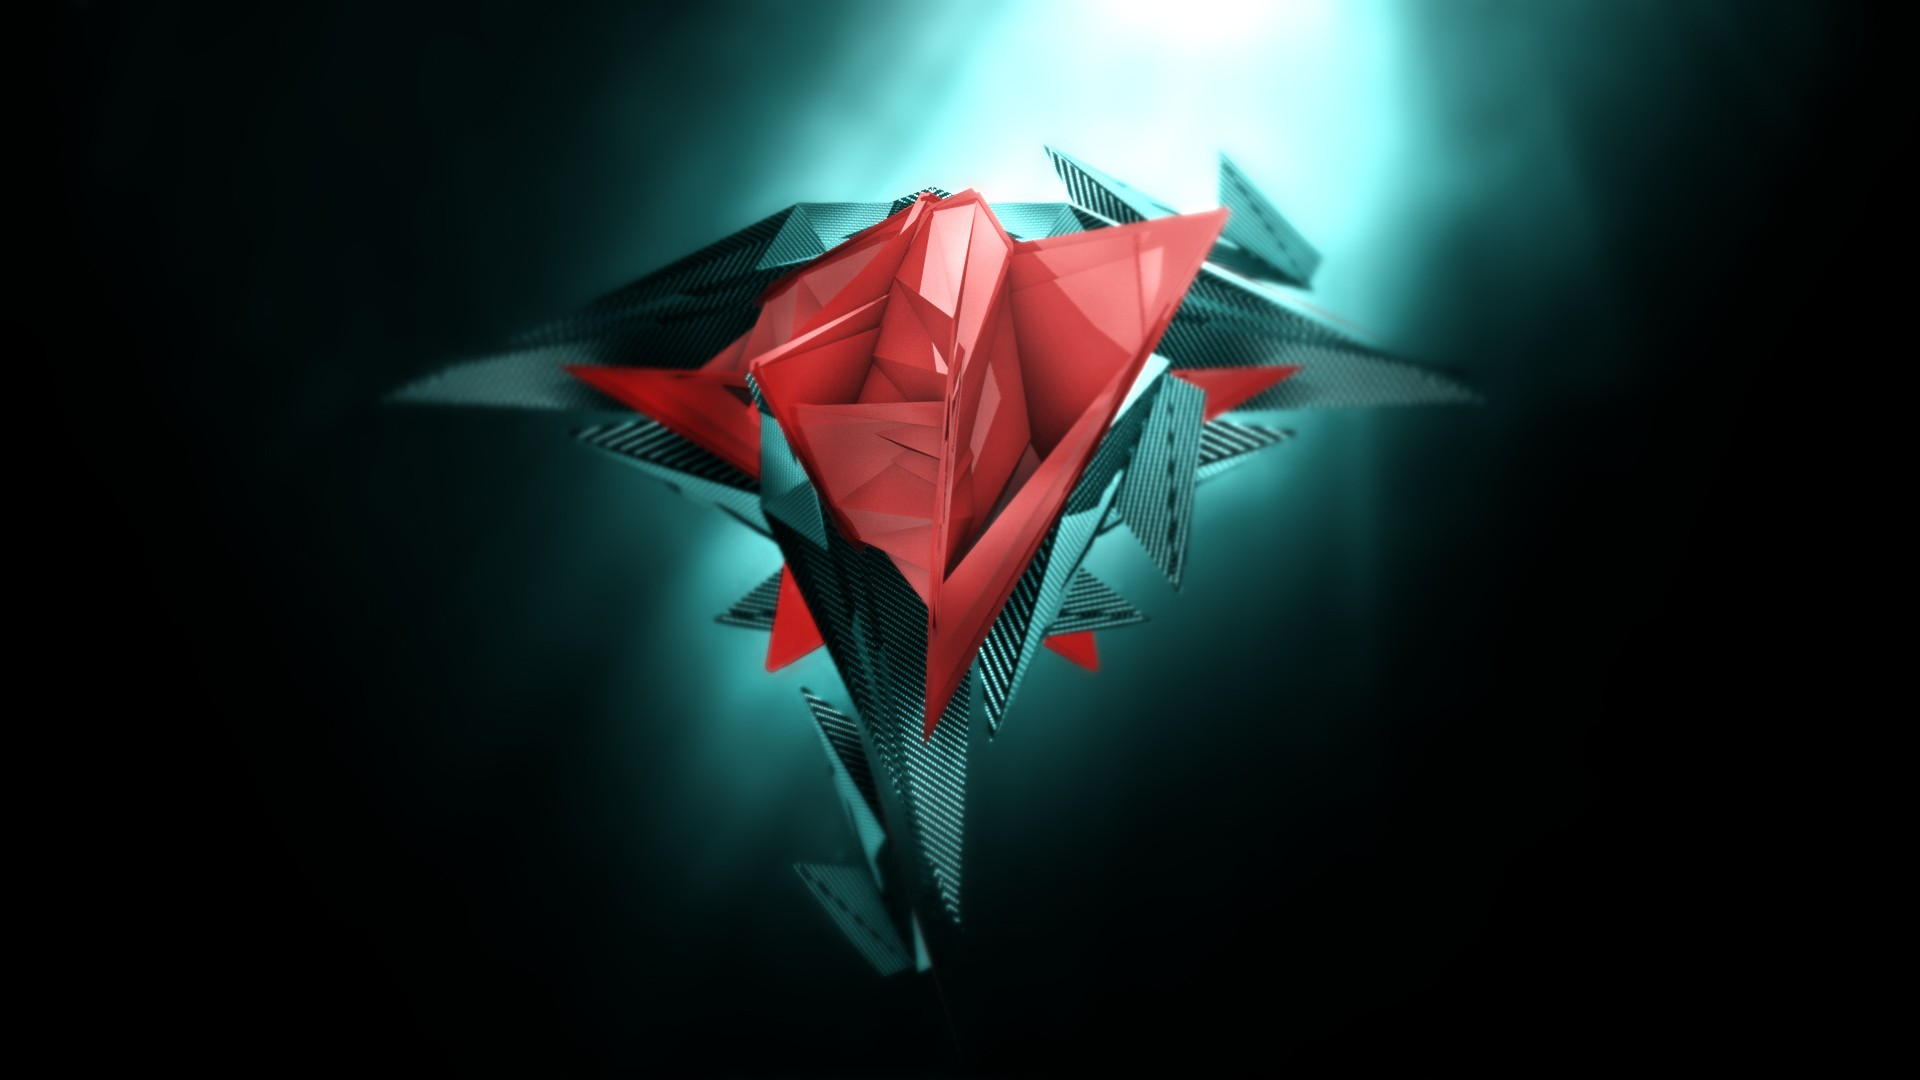 3D geometry red